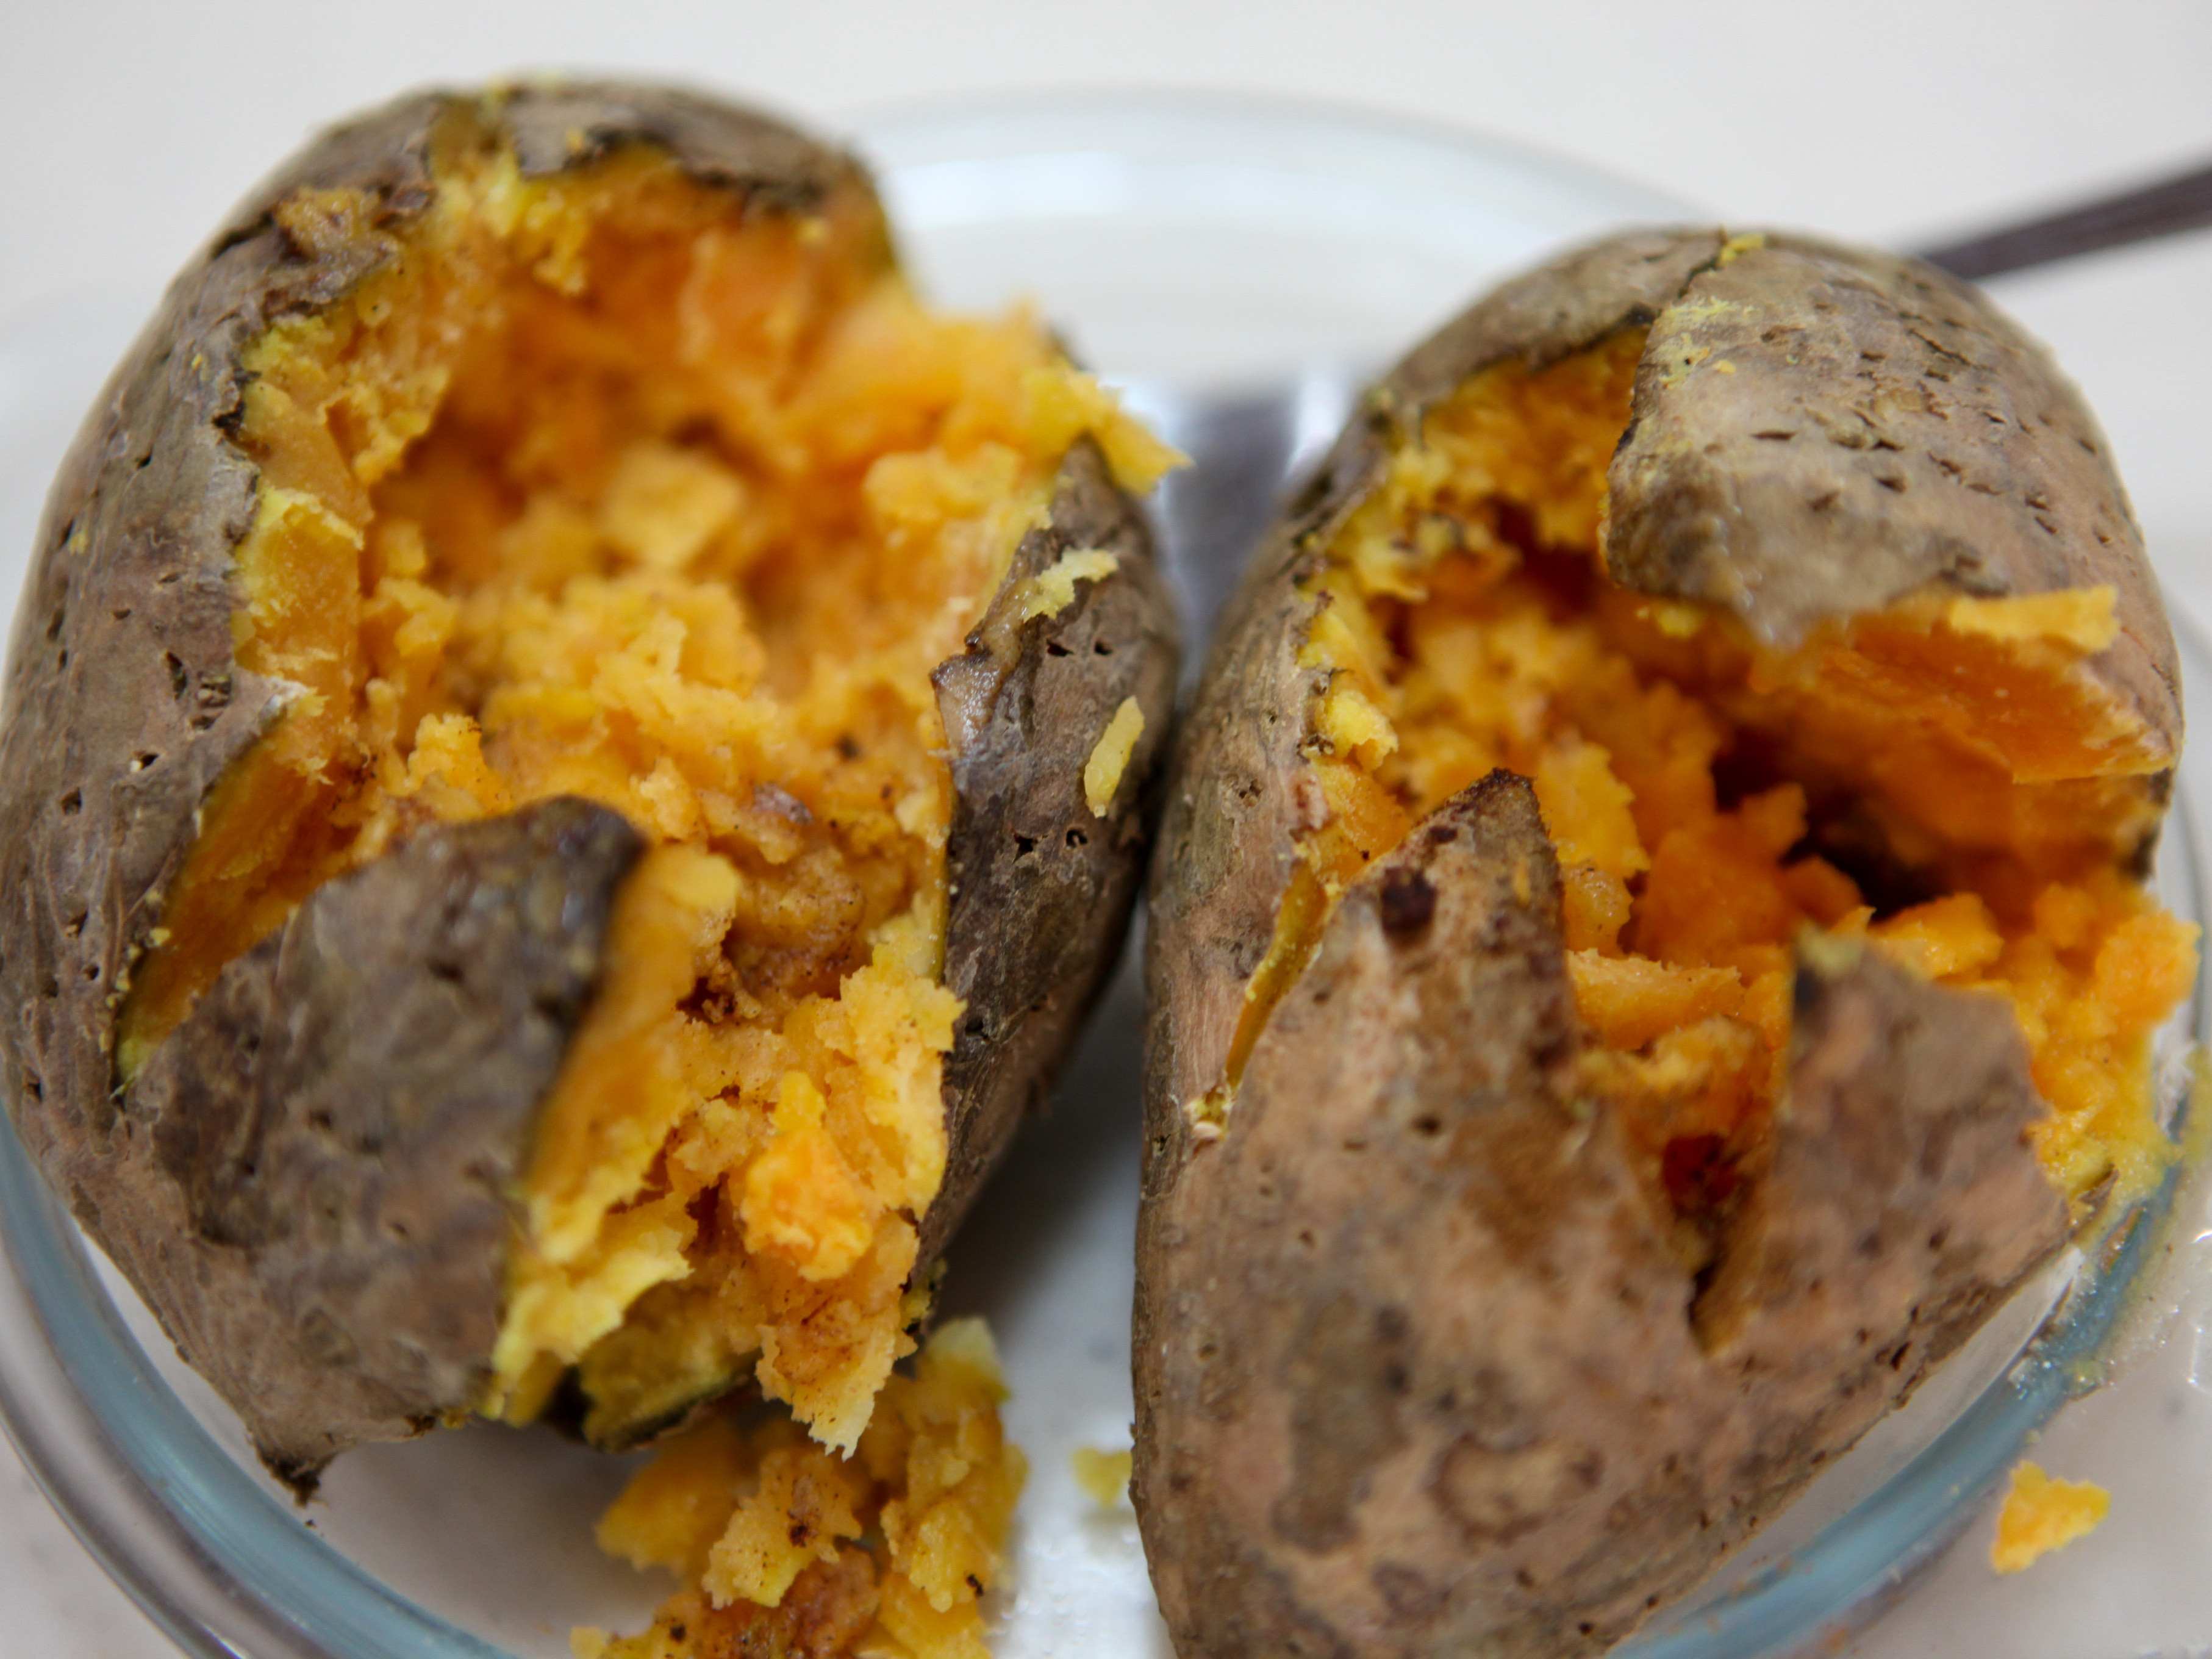 How To Microwave Sweet Potato  How to Cook a Sweet Potato in the Microwave 11 Steps